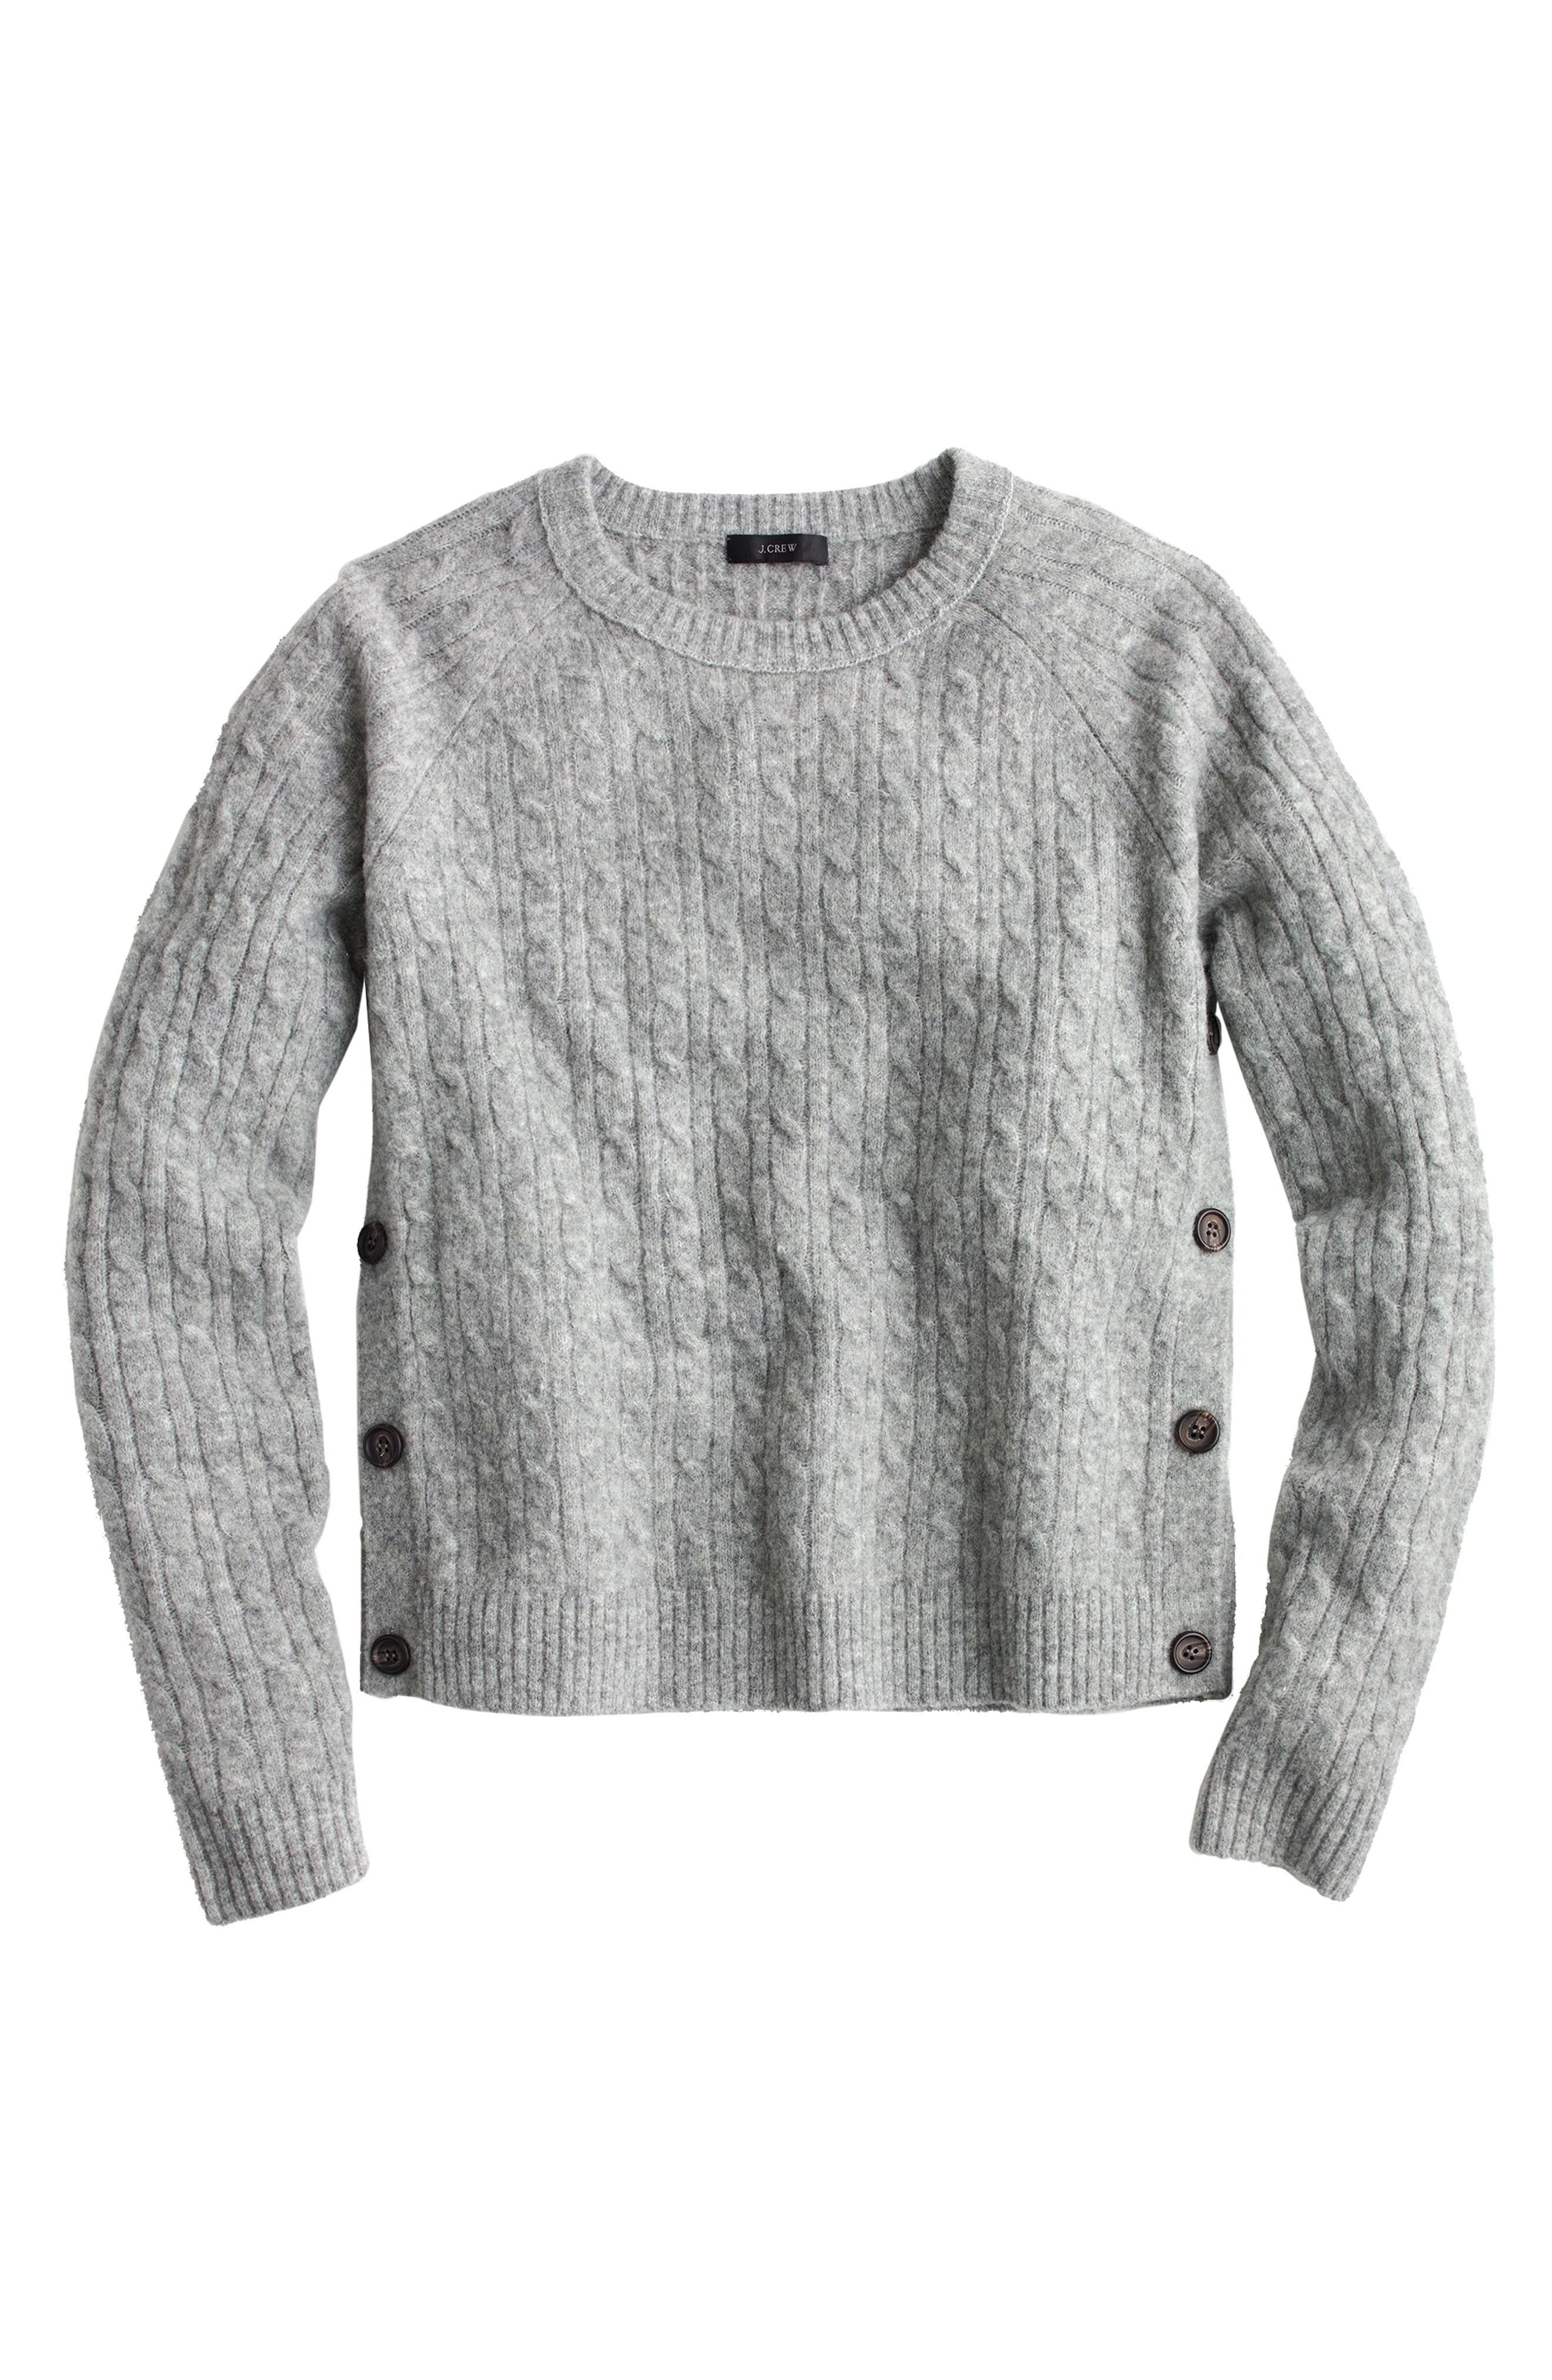 Cable Knit Sweater with Buttons,                             Main thumbnail 1, color,                             020